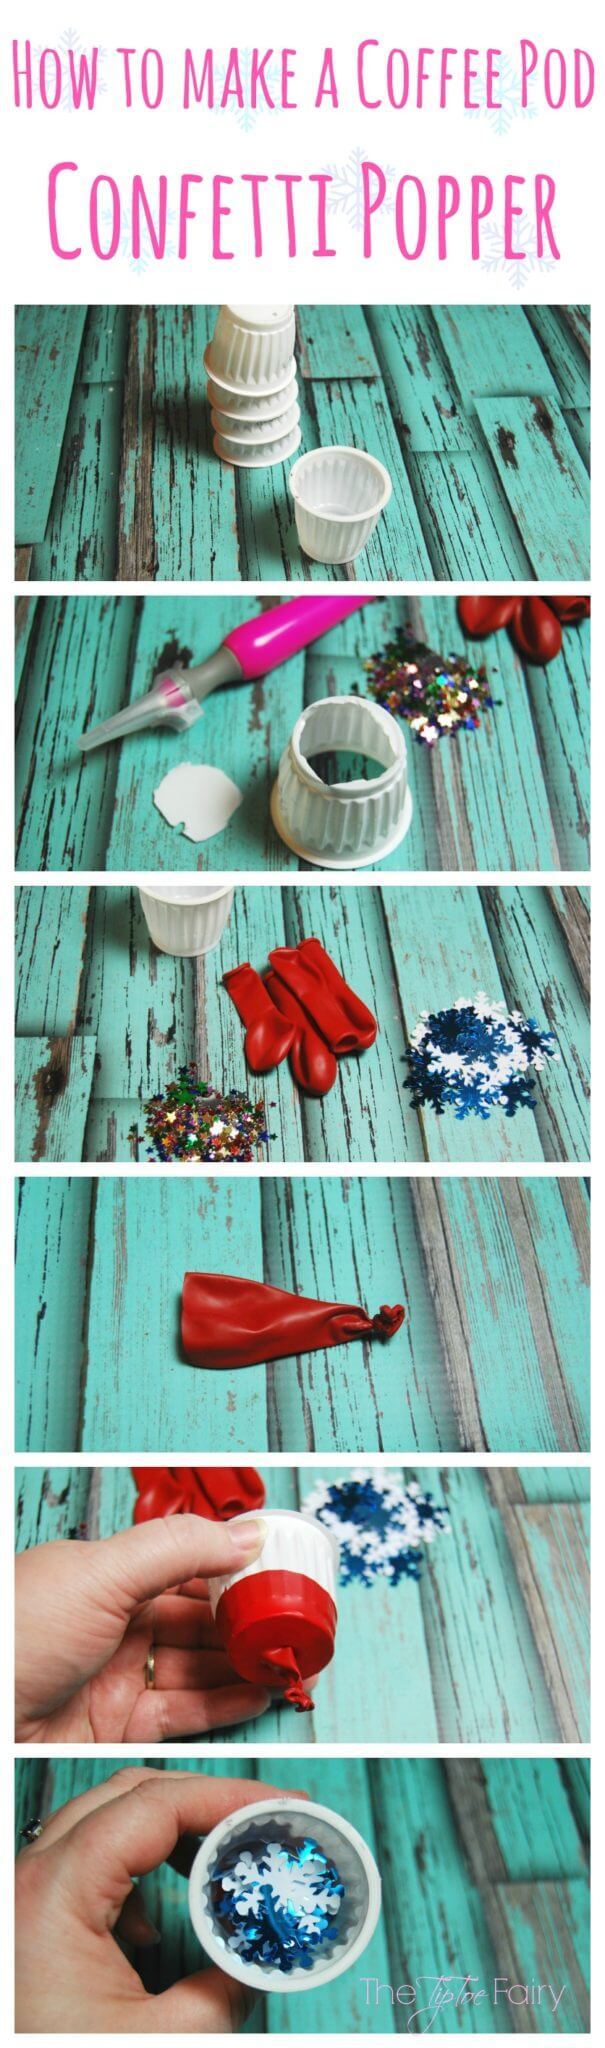 Make Confetti Poppers with upcycled Coffee Pods - an easy tutorial. Great for little hands of preschoolers for New Year's Eve!   The TipToe Fairy #McCafeMyWay #ad #tutorial